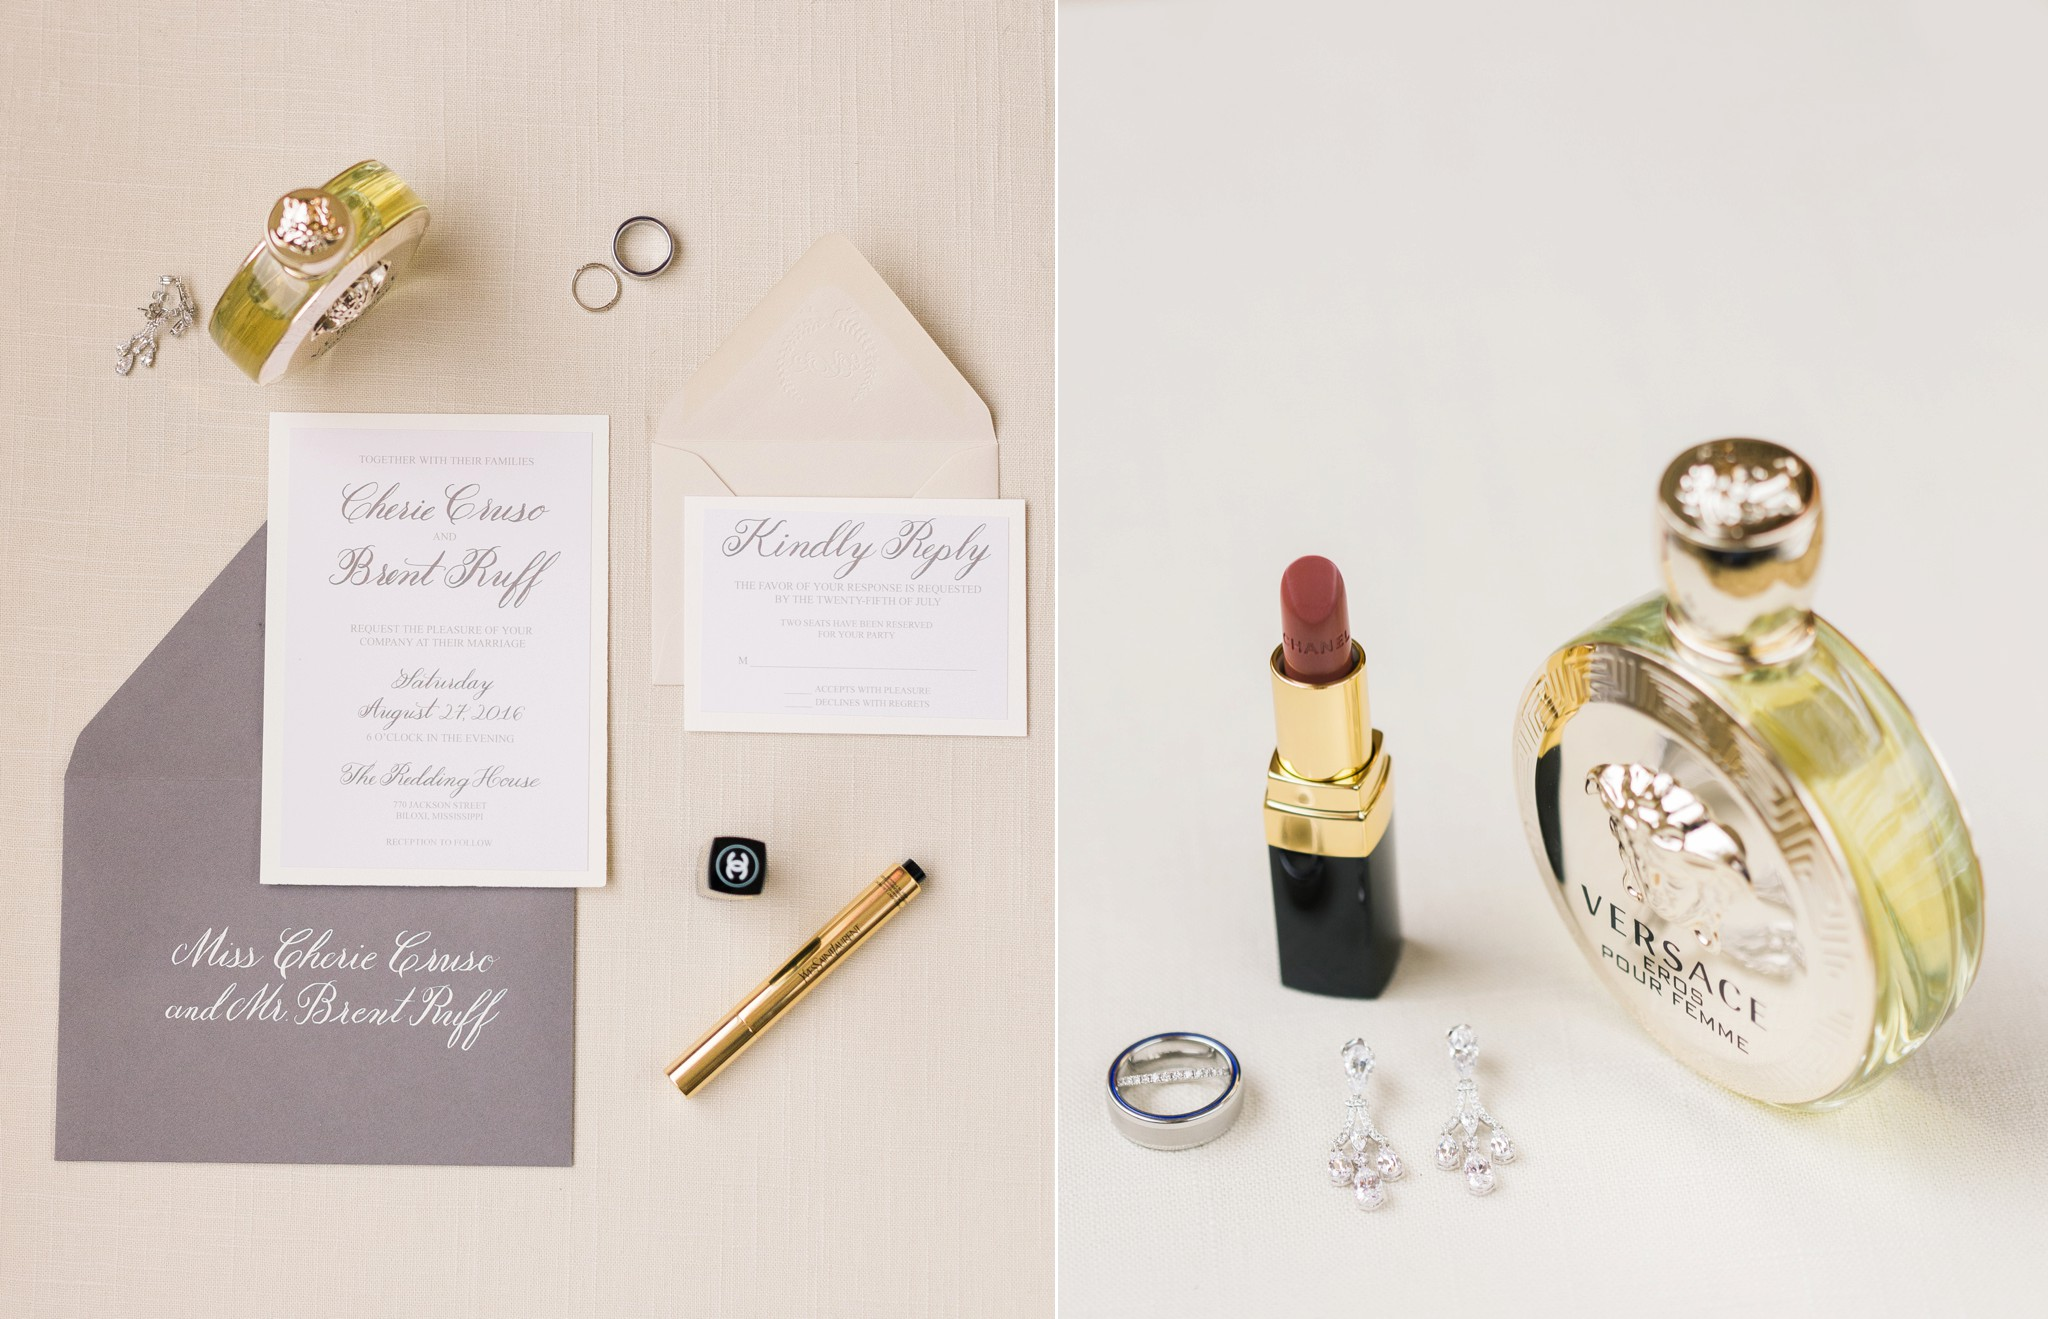 wedding-day-bridal-details-makeup-chanel-lipstick-versace-perfume